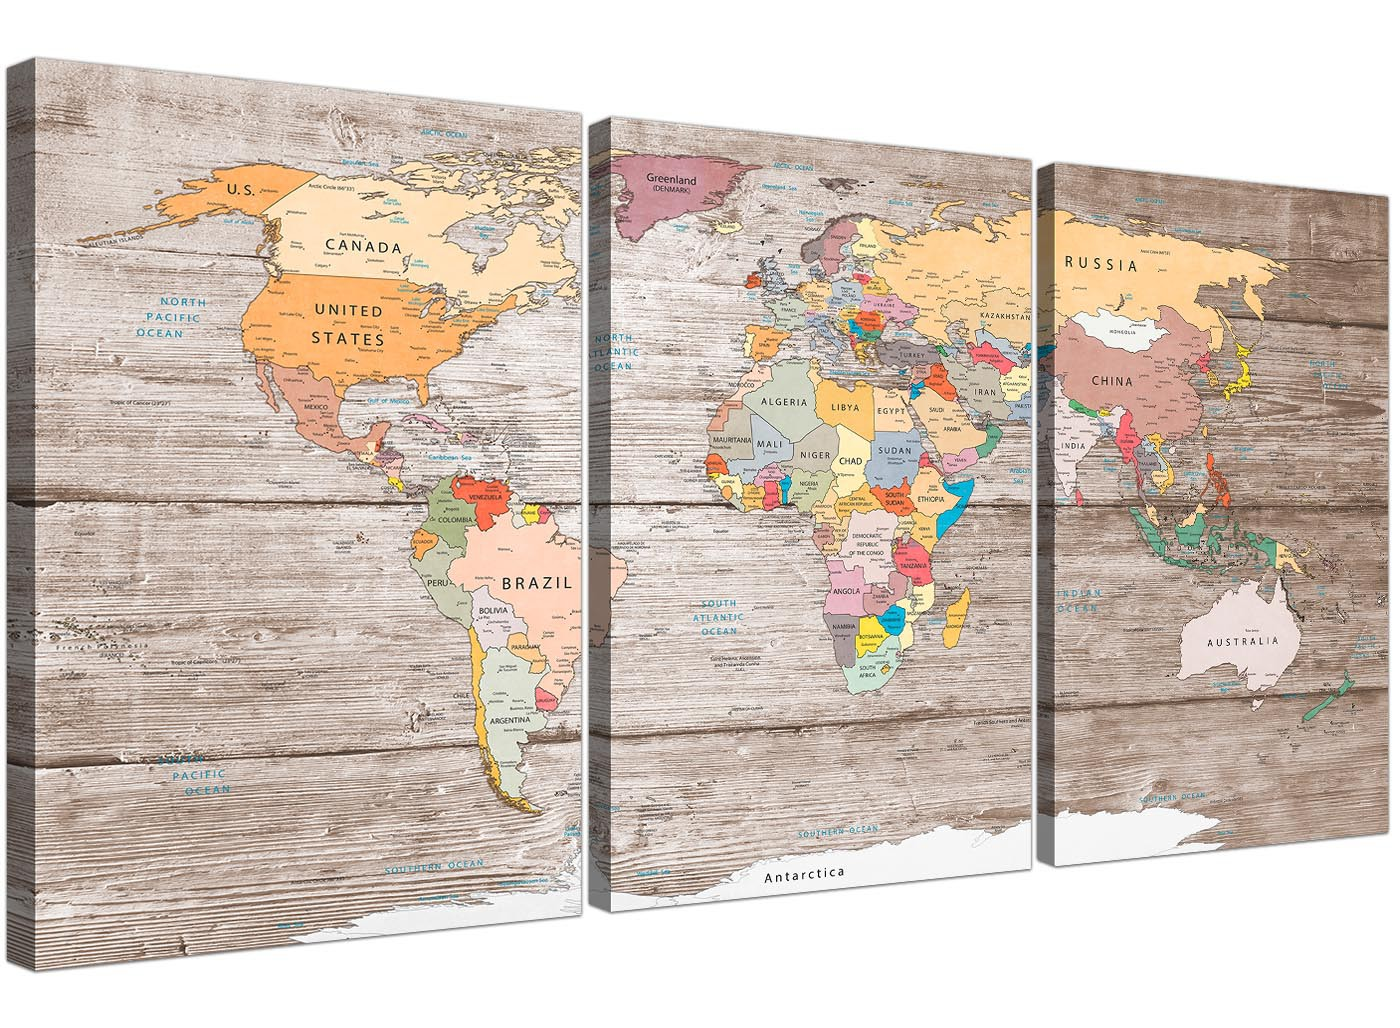 Large decorative map of world atlas canvas wall art print multi 3 large decorative map of world atlas canvas wall art print multi 3 set 3326 gumiabroncs Choice Image